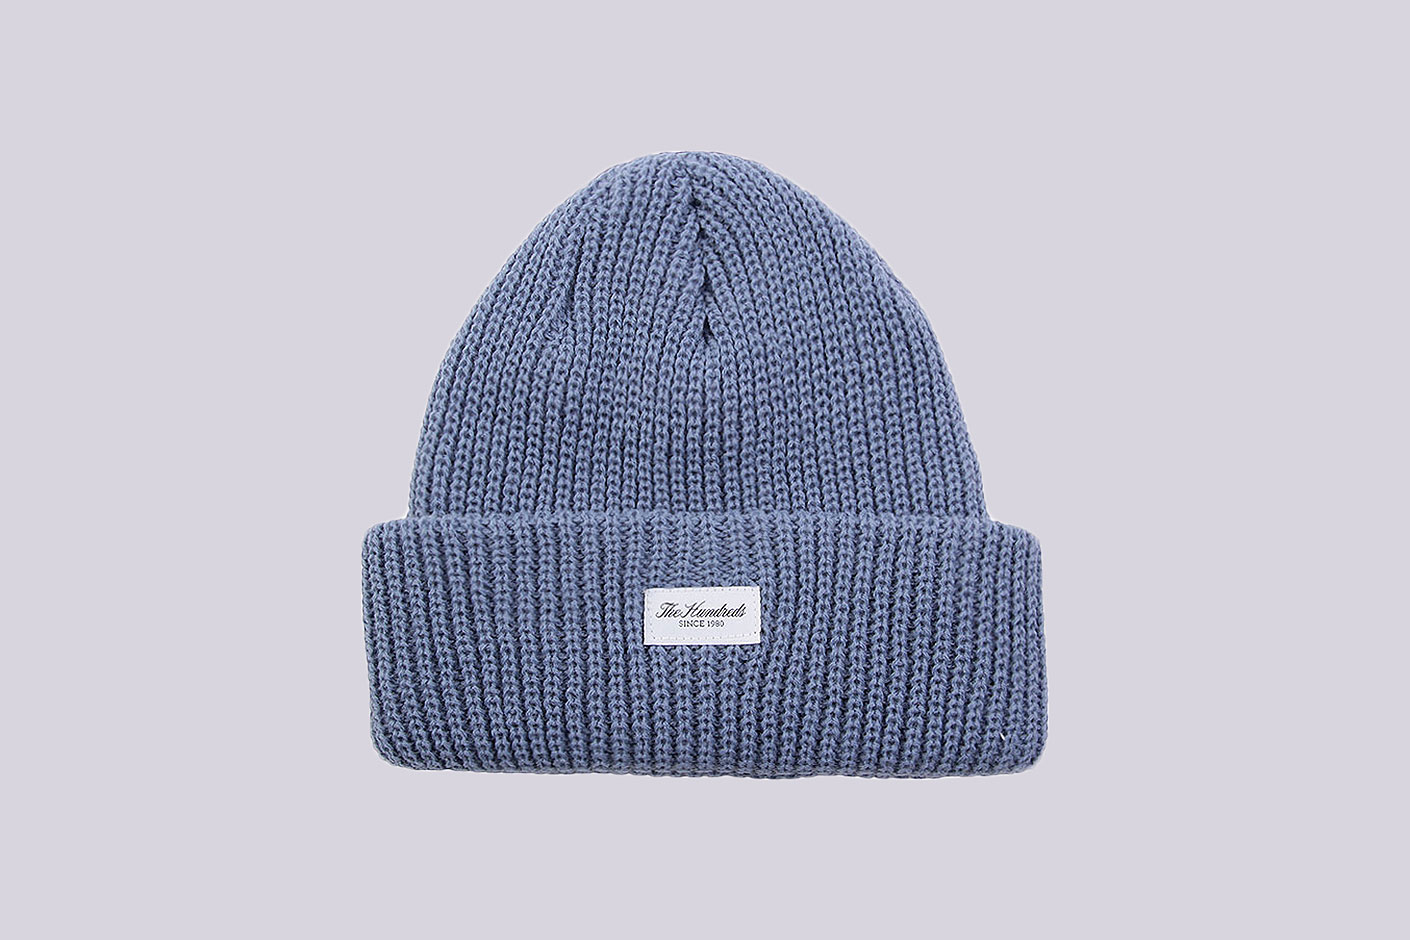 голубая шапка The Hundreds Crisp 2 Beanie